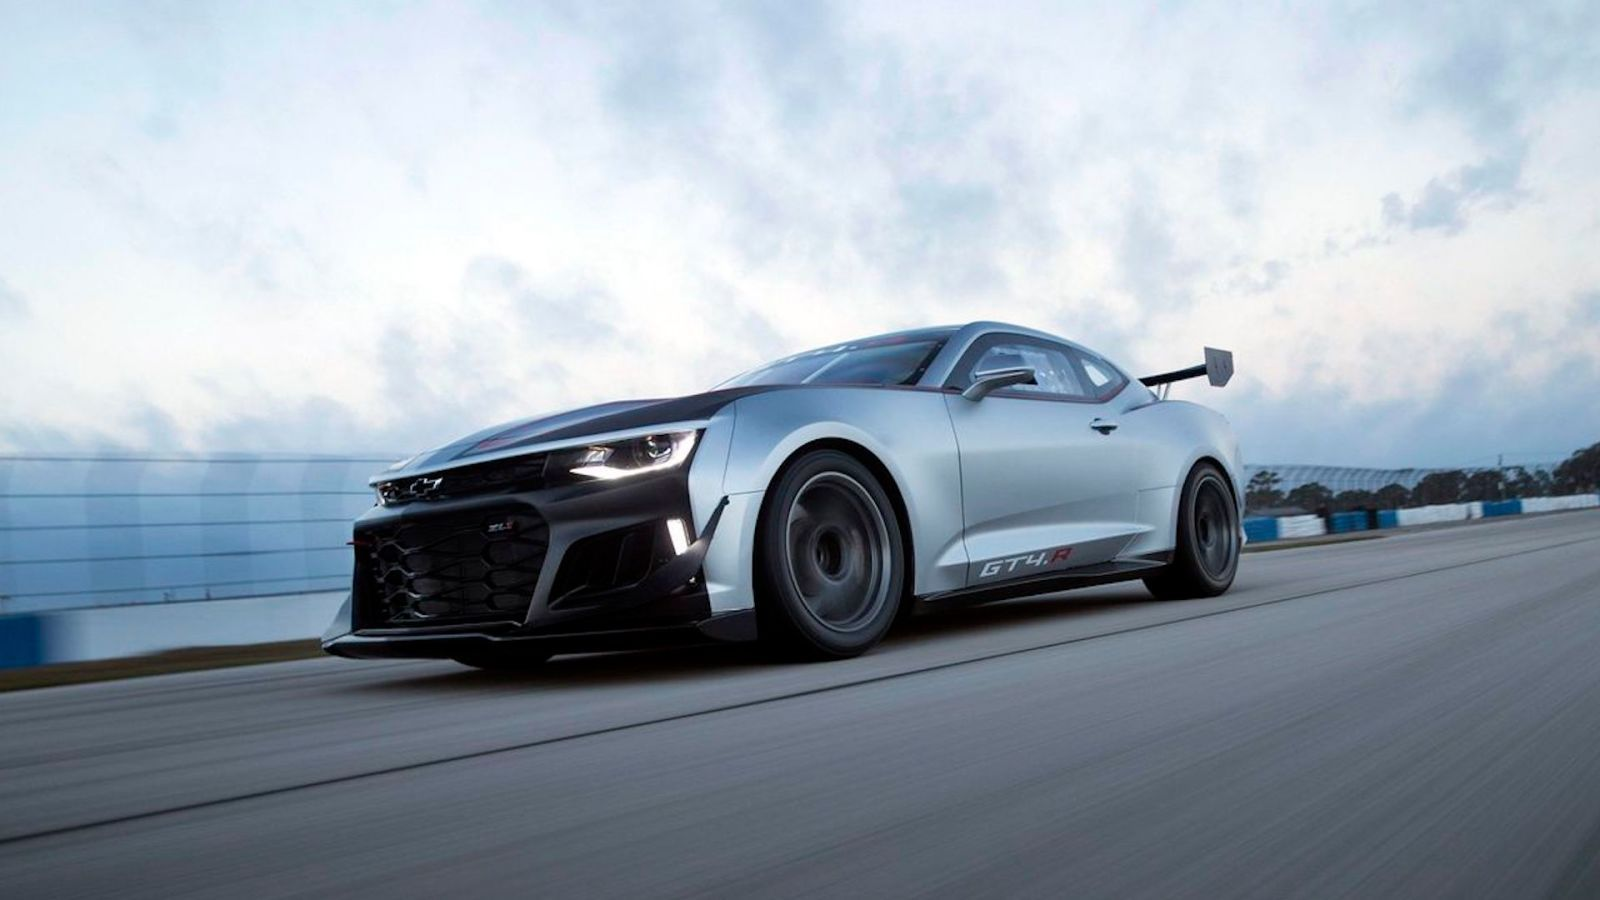 The Ultra Angry Chevrolet Camaro Gt4 R Race Car Is Now Available